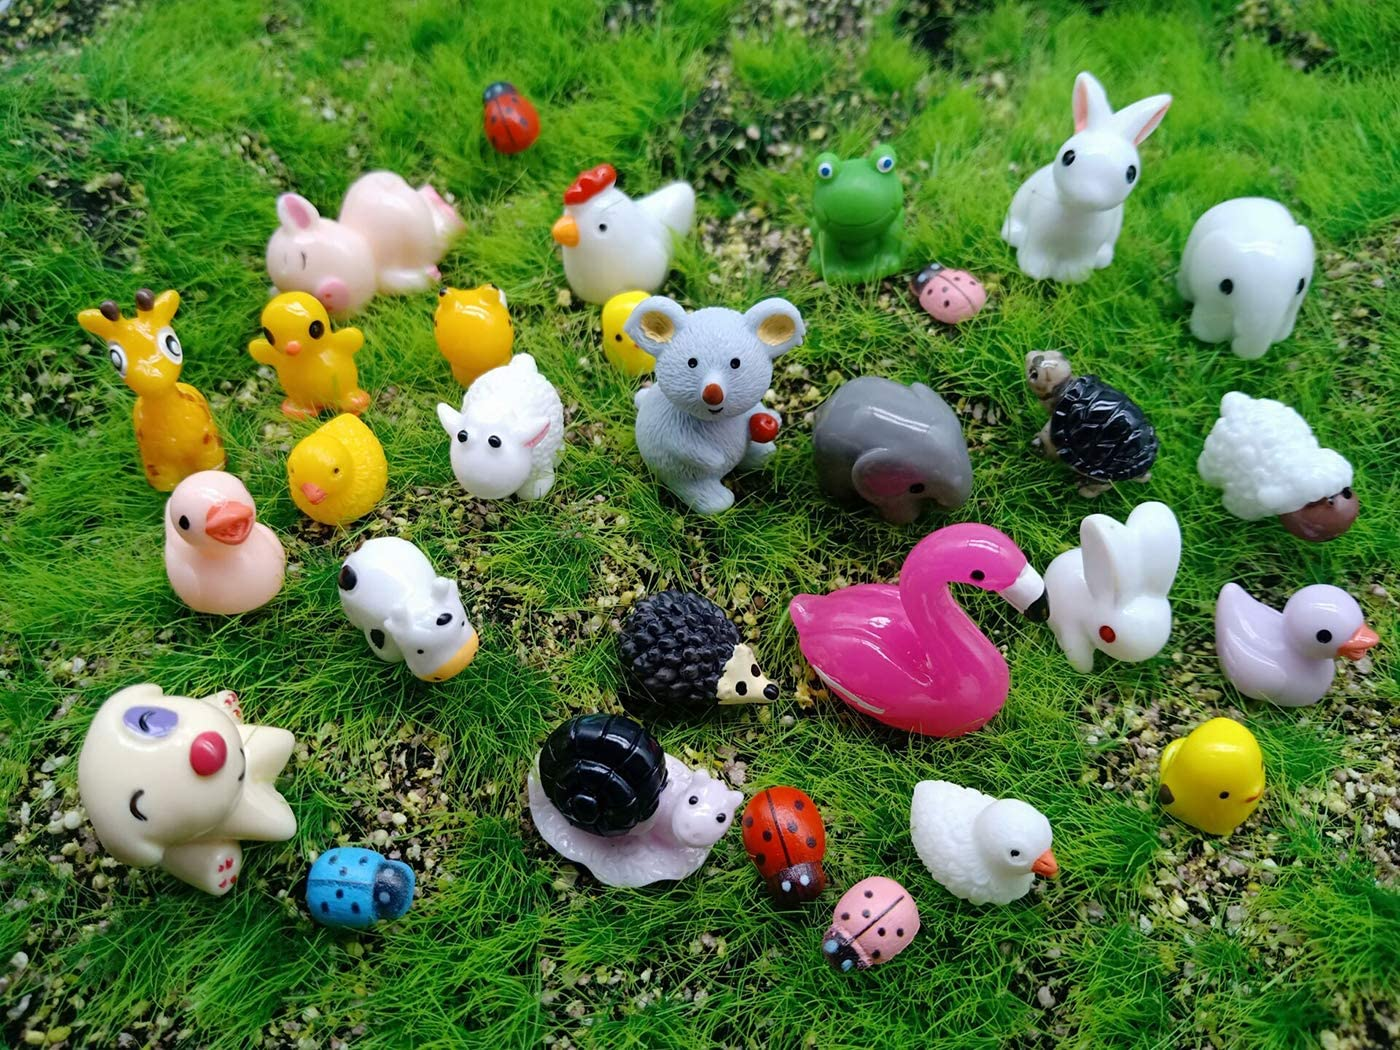 Kbraveo 45Pcs Mini Animals Miniature Ornament Kits Set for DIY,Fairy Garden Dollhouse Décor(Elephants,rabbits,hedgehogs,hens,bunnies,cubs,chicks,bees,cows,frogs,snails,turtles,puppies,pigs,sheep deer,